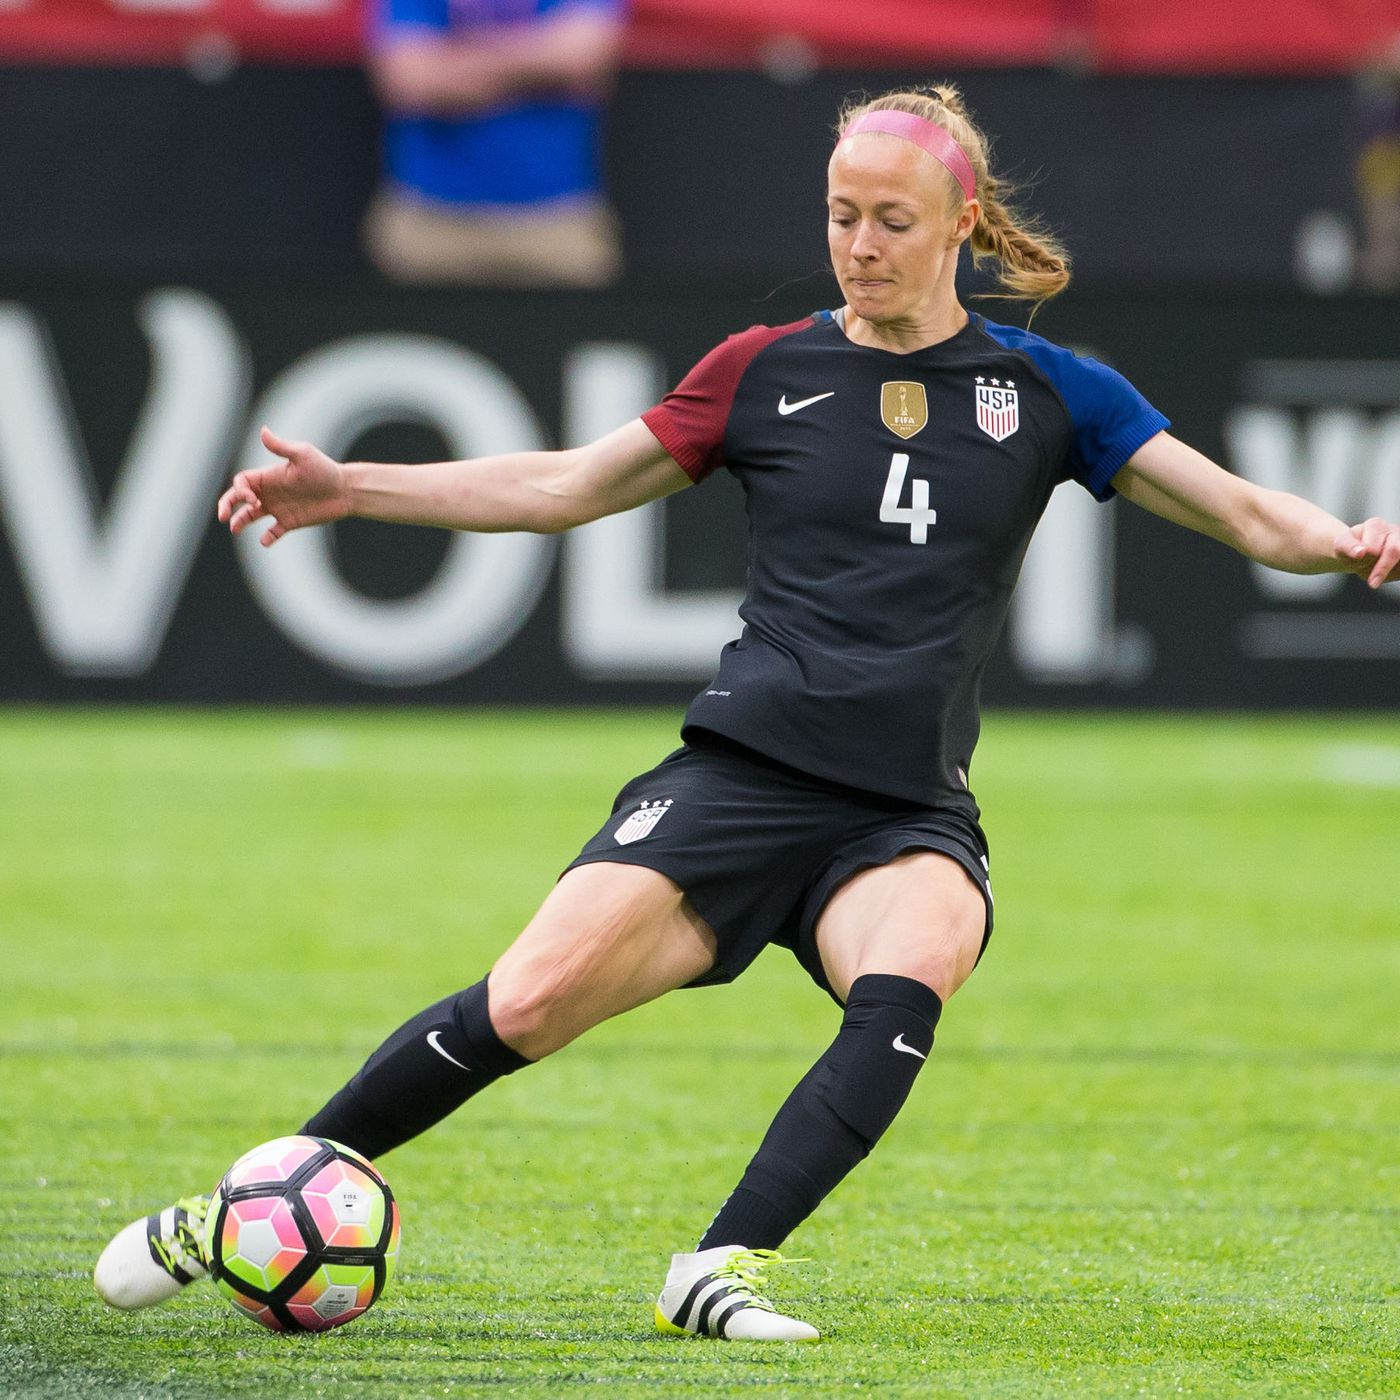 USA Soccer Live Stream: How to Watch the She Believes Cup